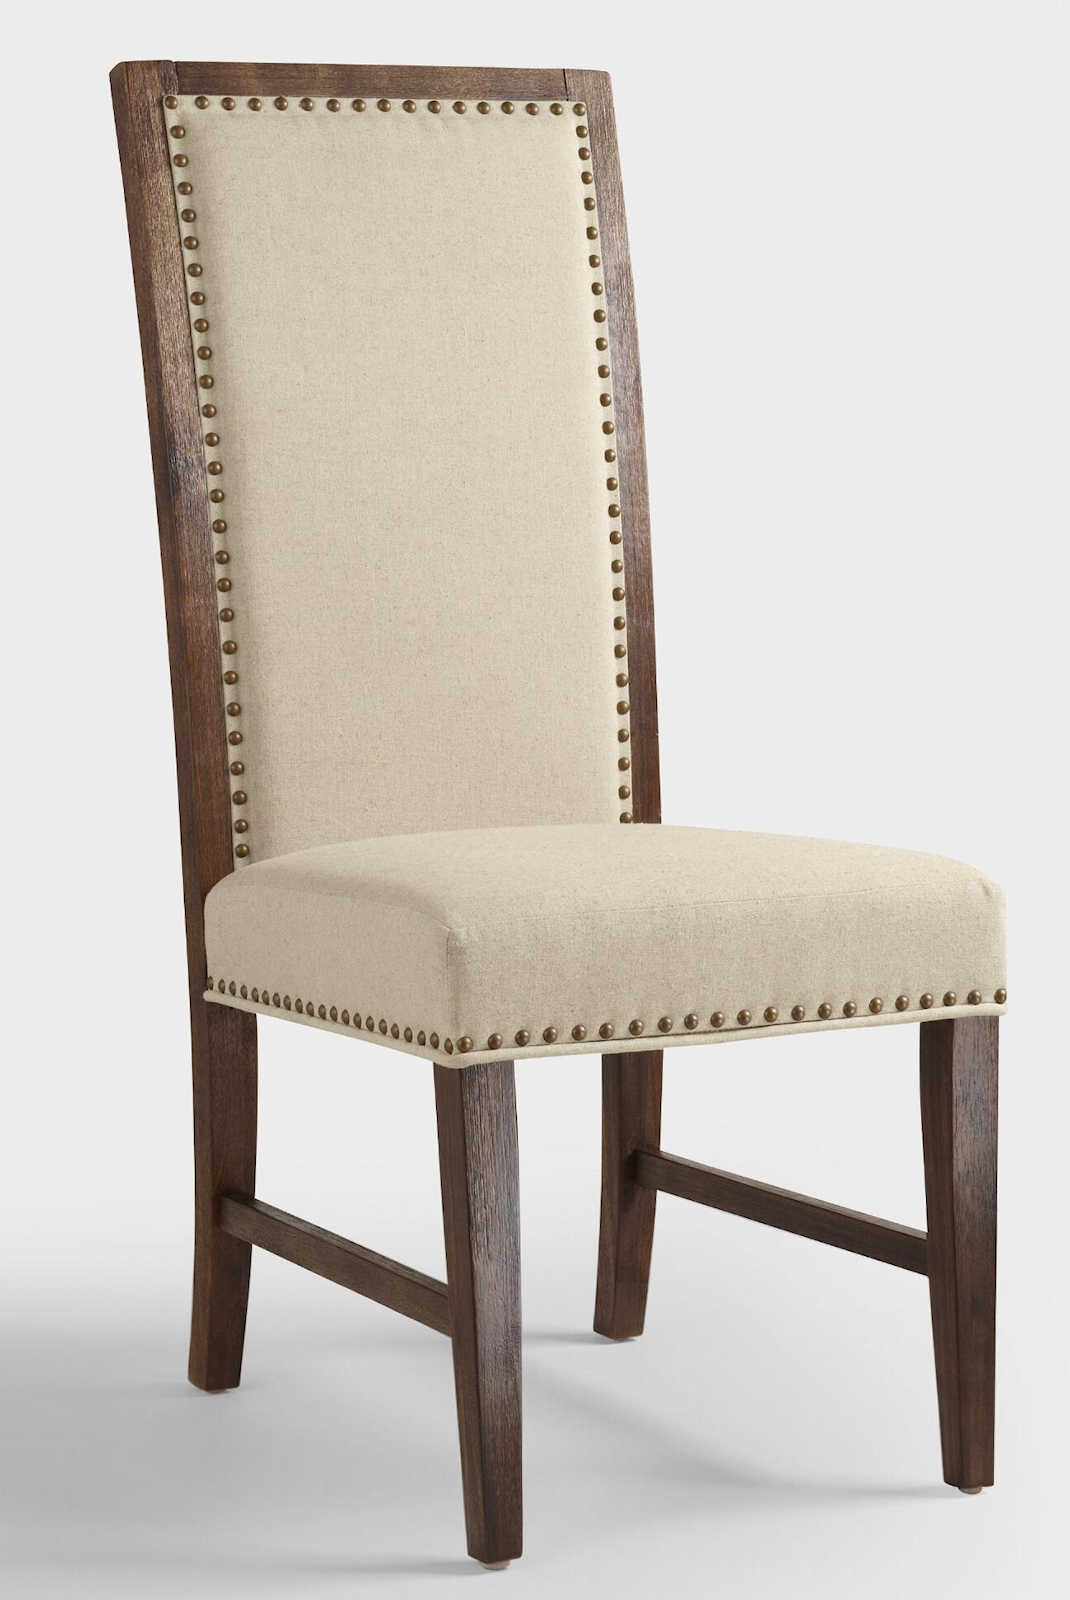 Rustic Dining Chairs Breakfast Room Dining Chair Makeover From Neutral To